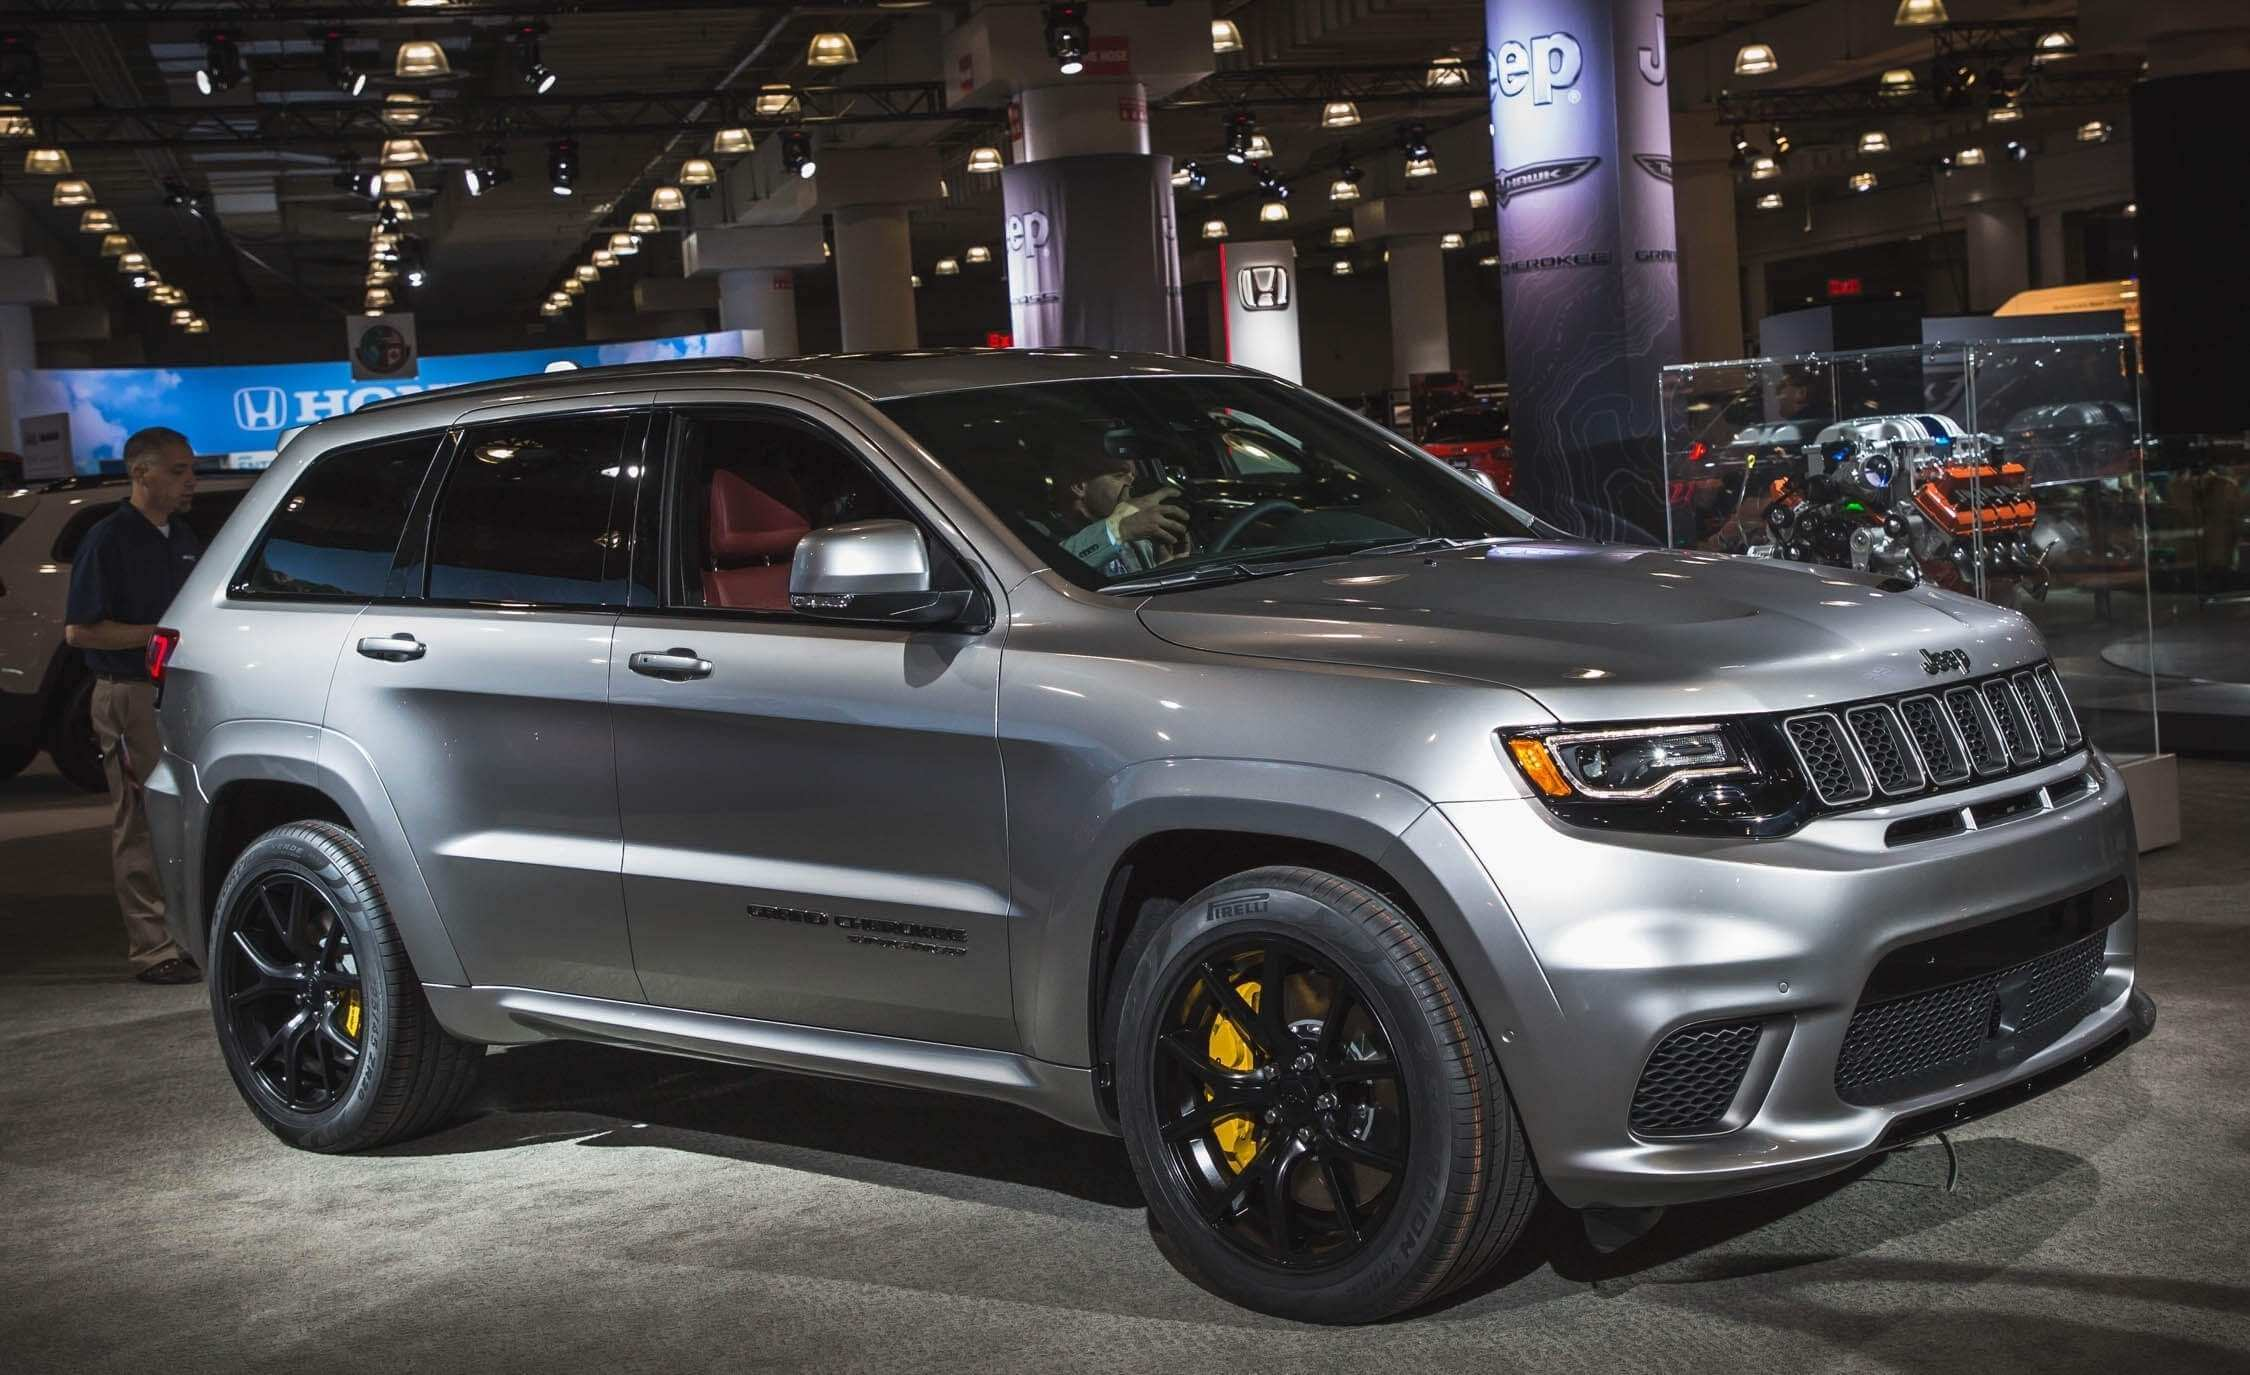 68 All New 2019 Jeep Grand Cherokee Diesel Overview